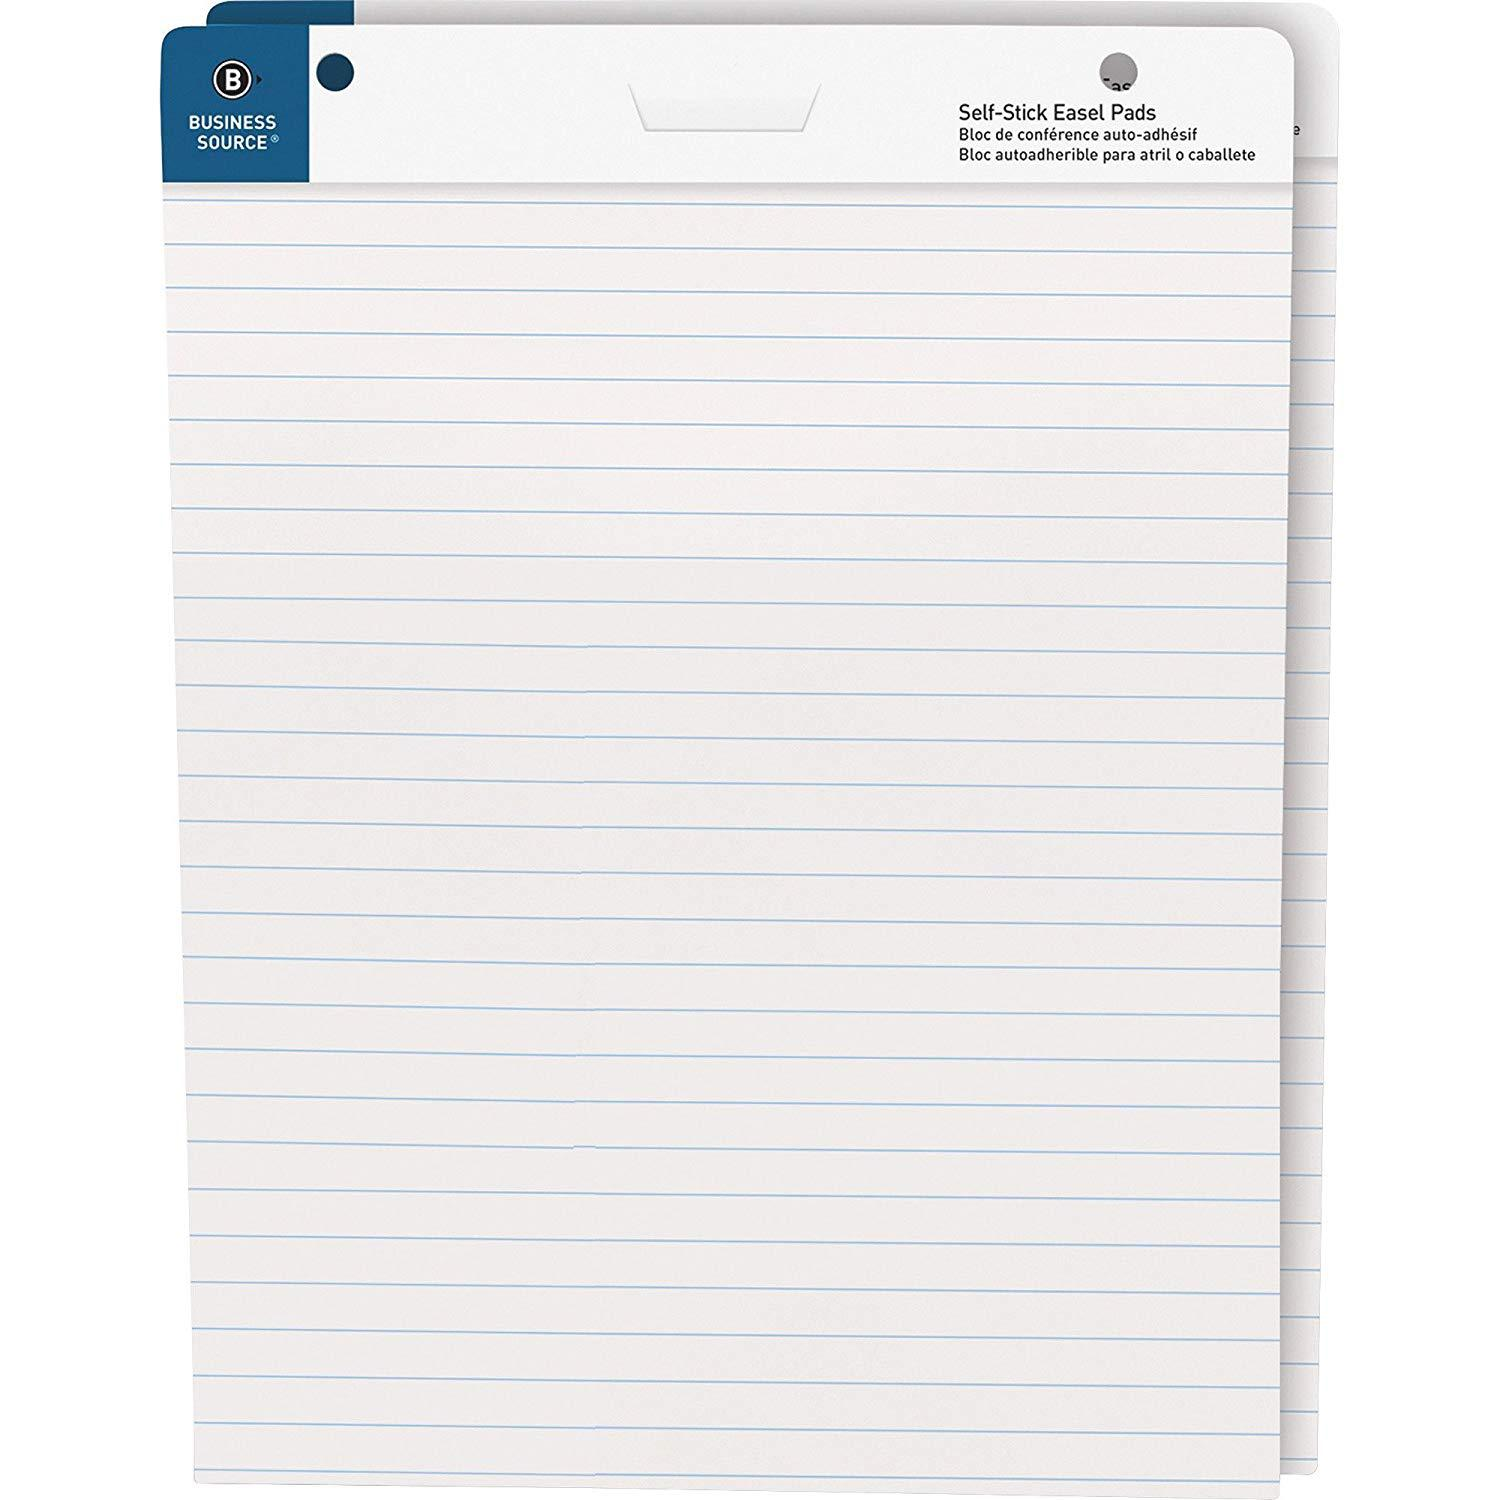 Business Source Self Stick Easel Pad Ruled 25 x 30 inch 30 Sheets Box of 2 Pads